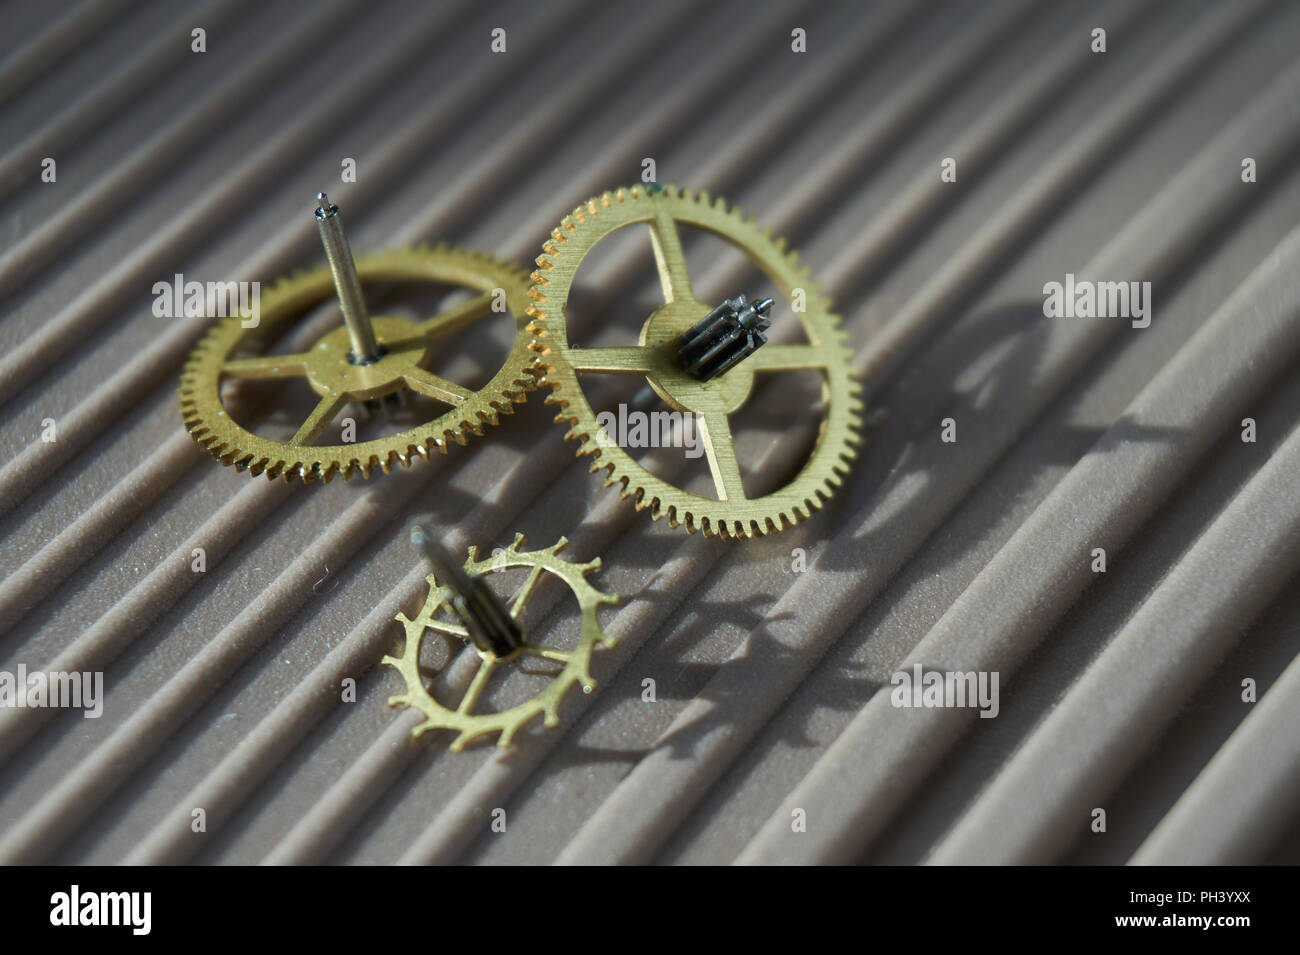 Three different precision engineered toothed brass metal cog wheels lying on a ridges grey background with copy space in a conceptual image - Stock Image